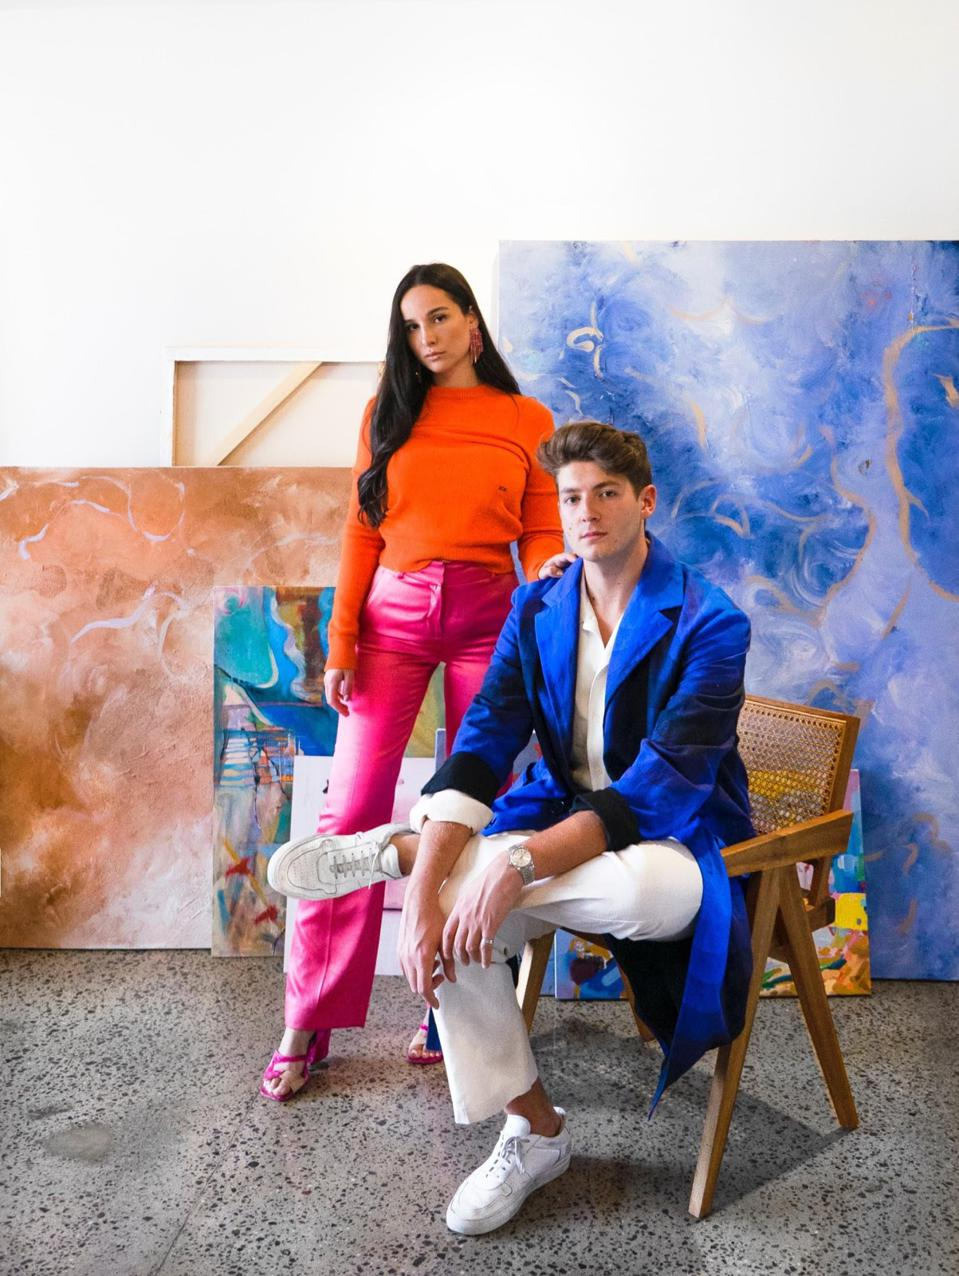 Founders of Medium Rare Art, Charles Royle and Samantha Ratiner, in their office